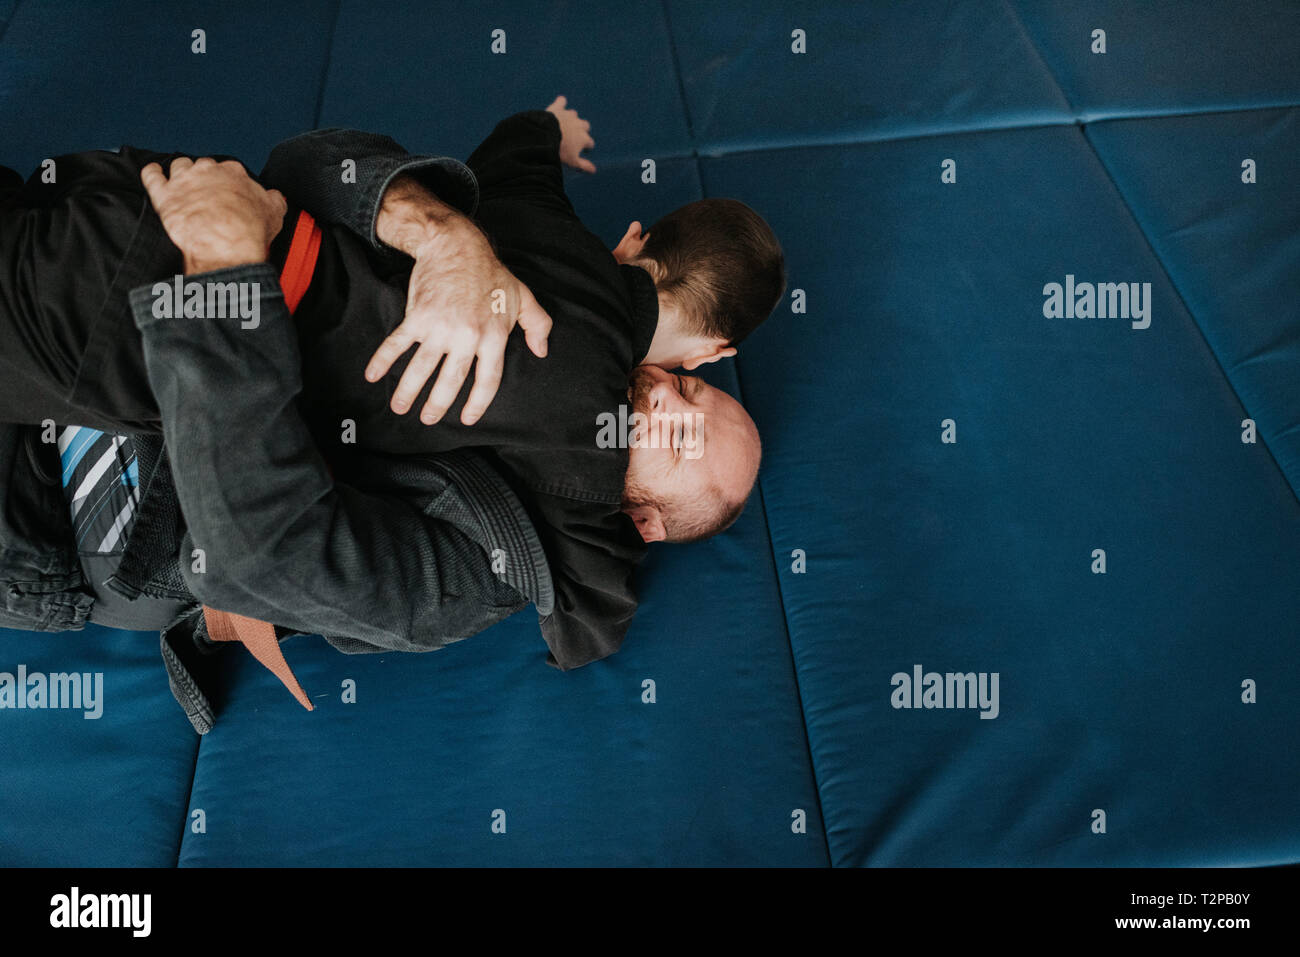 Coach and student wrestling in studio - Stock Image